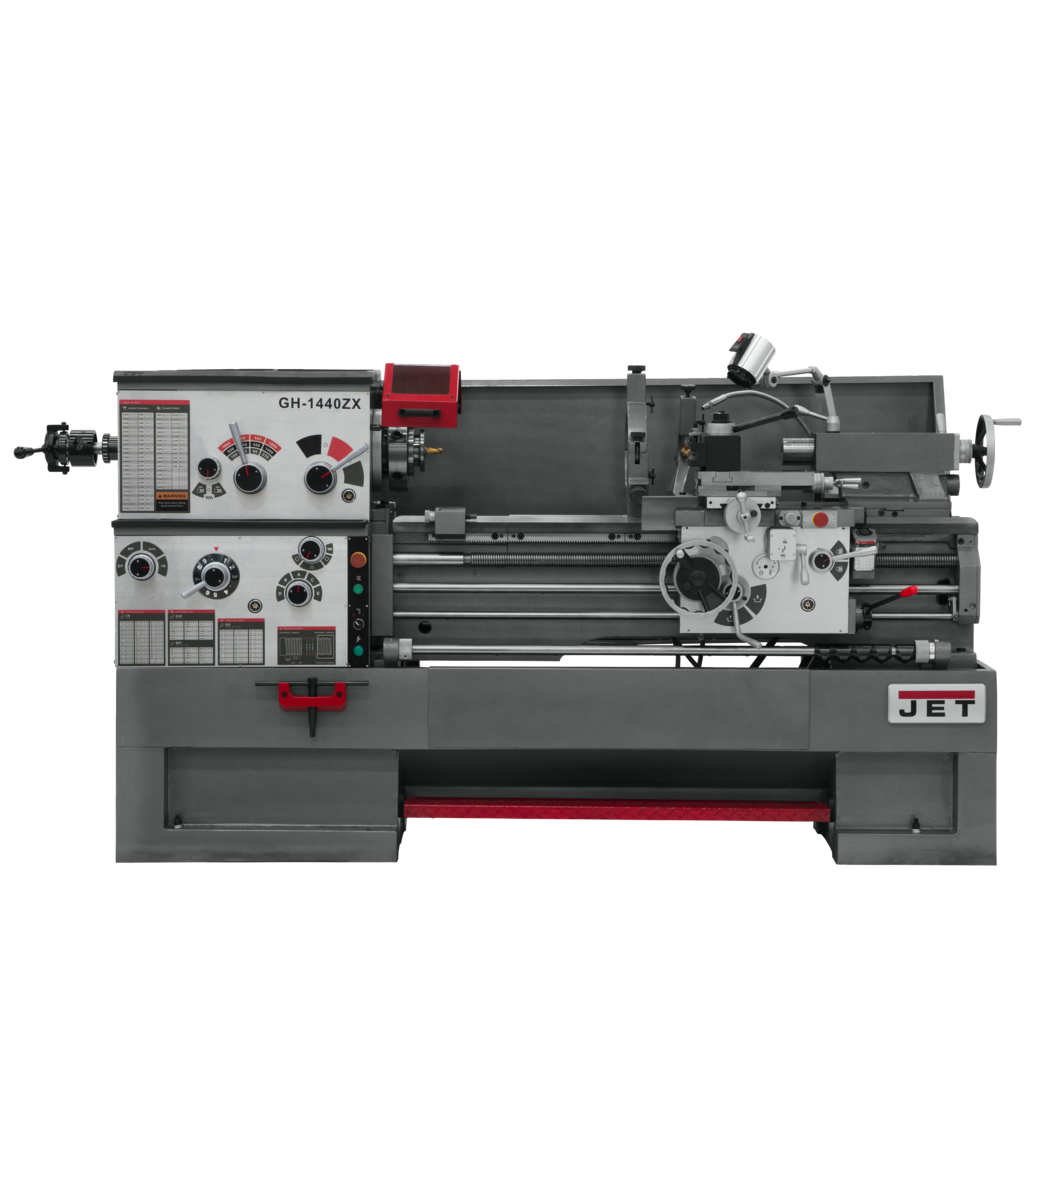 GH-1440ZX Lathe With Taper Attachment and Collet Closer